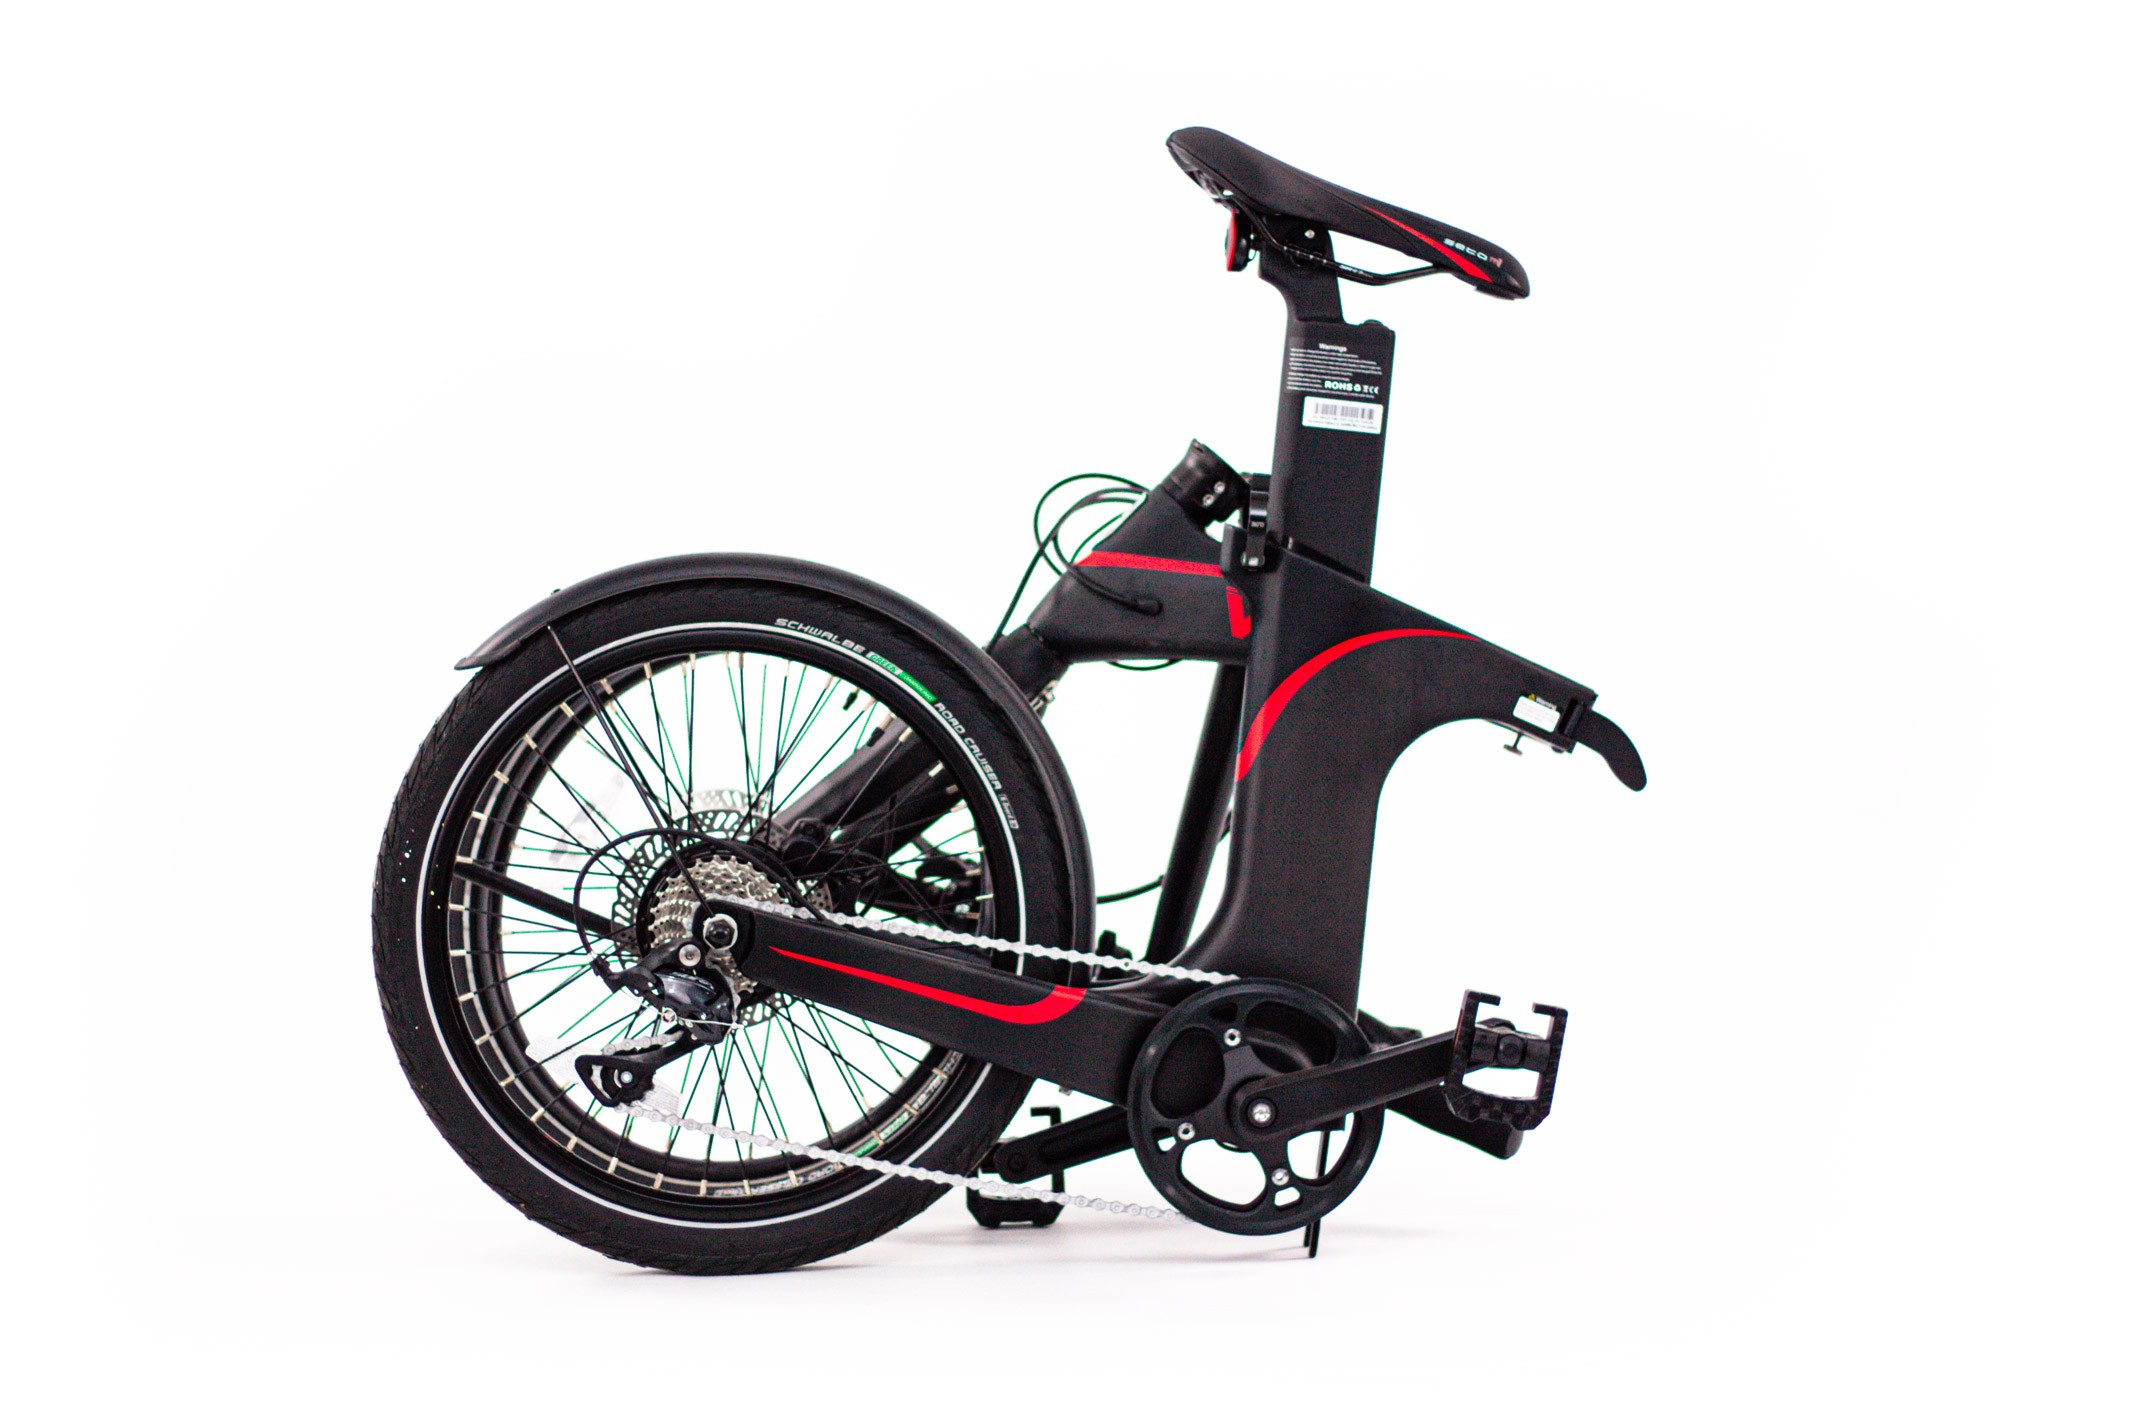 https://w8w5m3f8.stackpathcdn.com/22821/velo-electrique-pliant-vg-bikes-ultimate-carbon-378wh.jpg